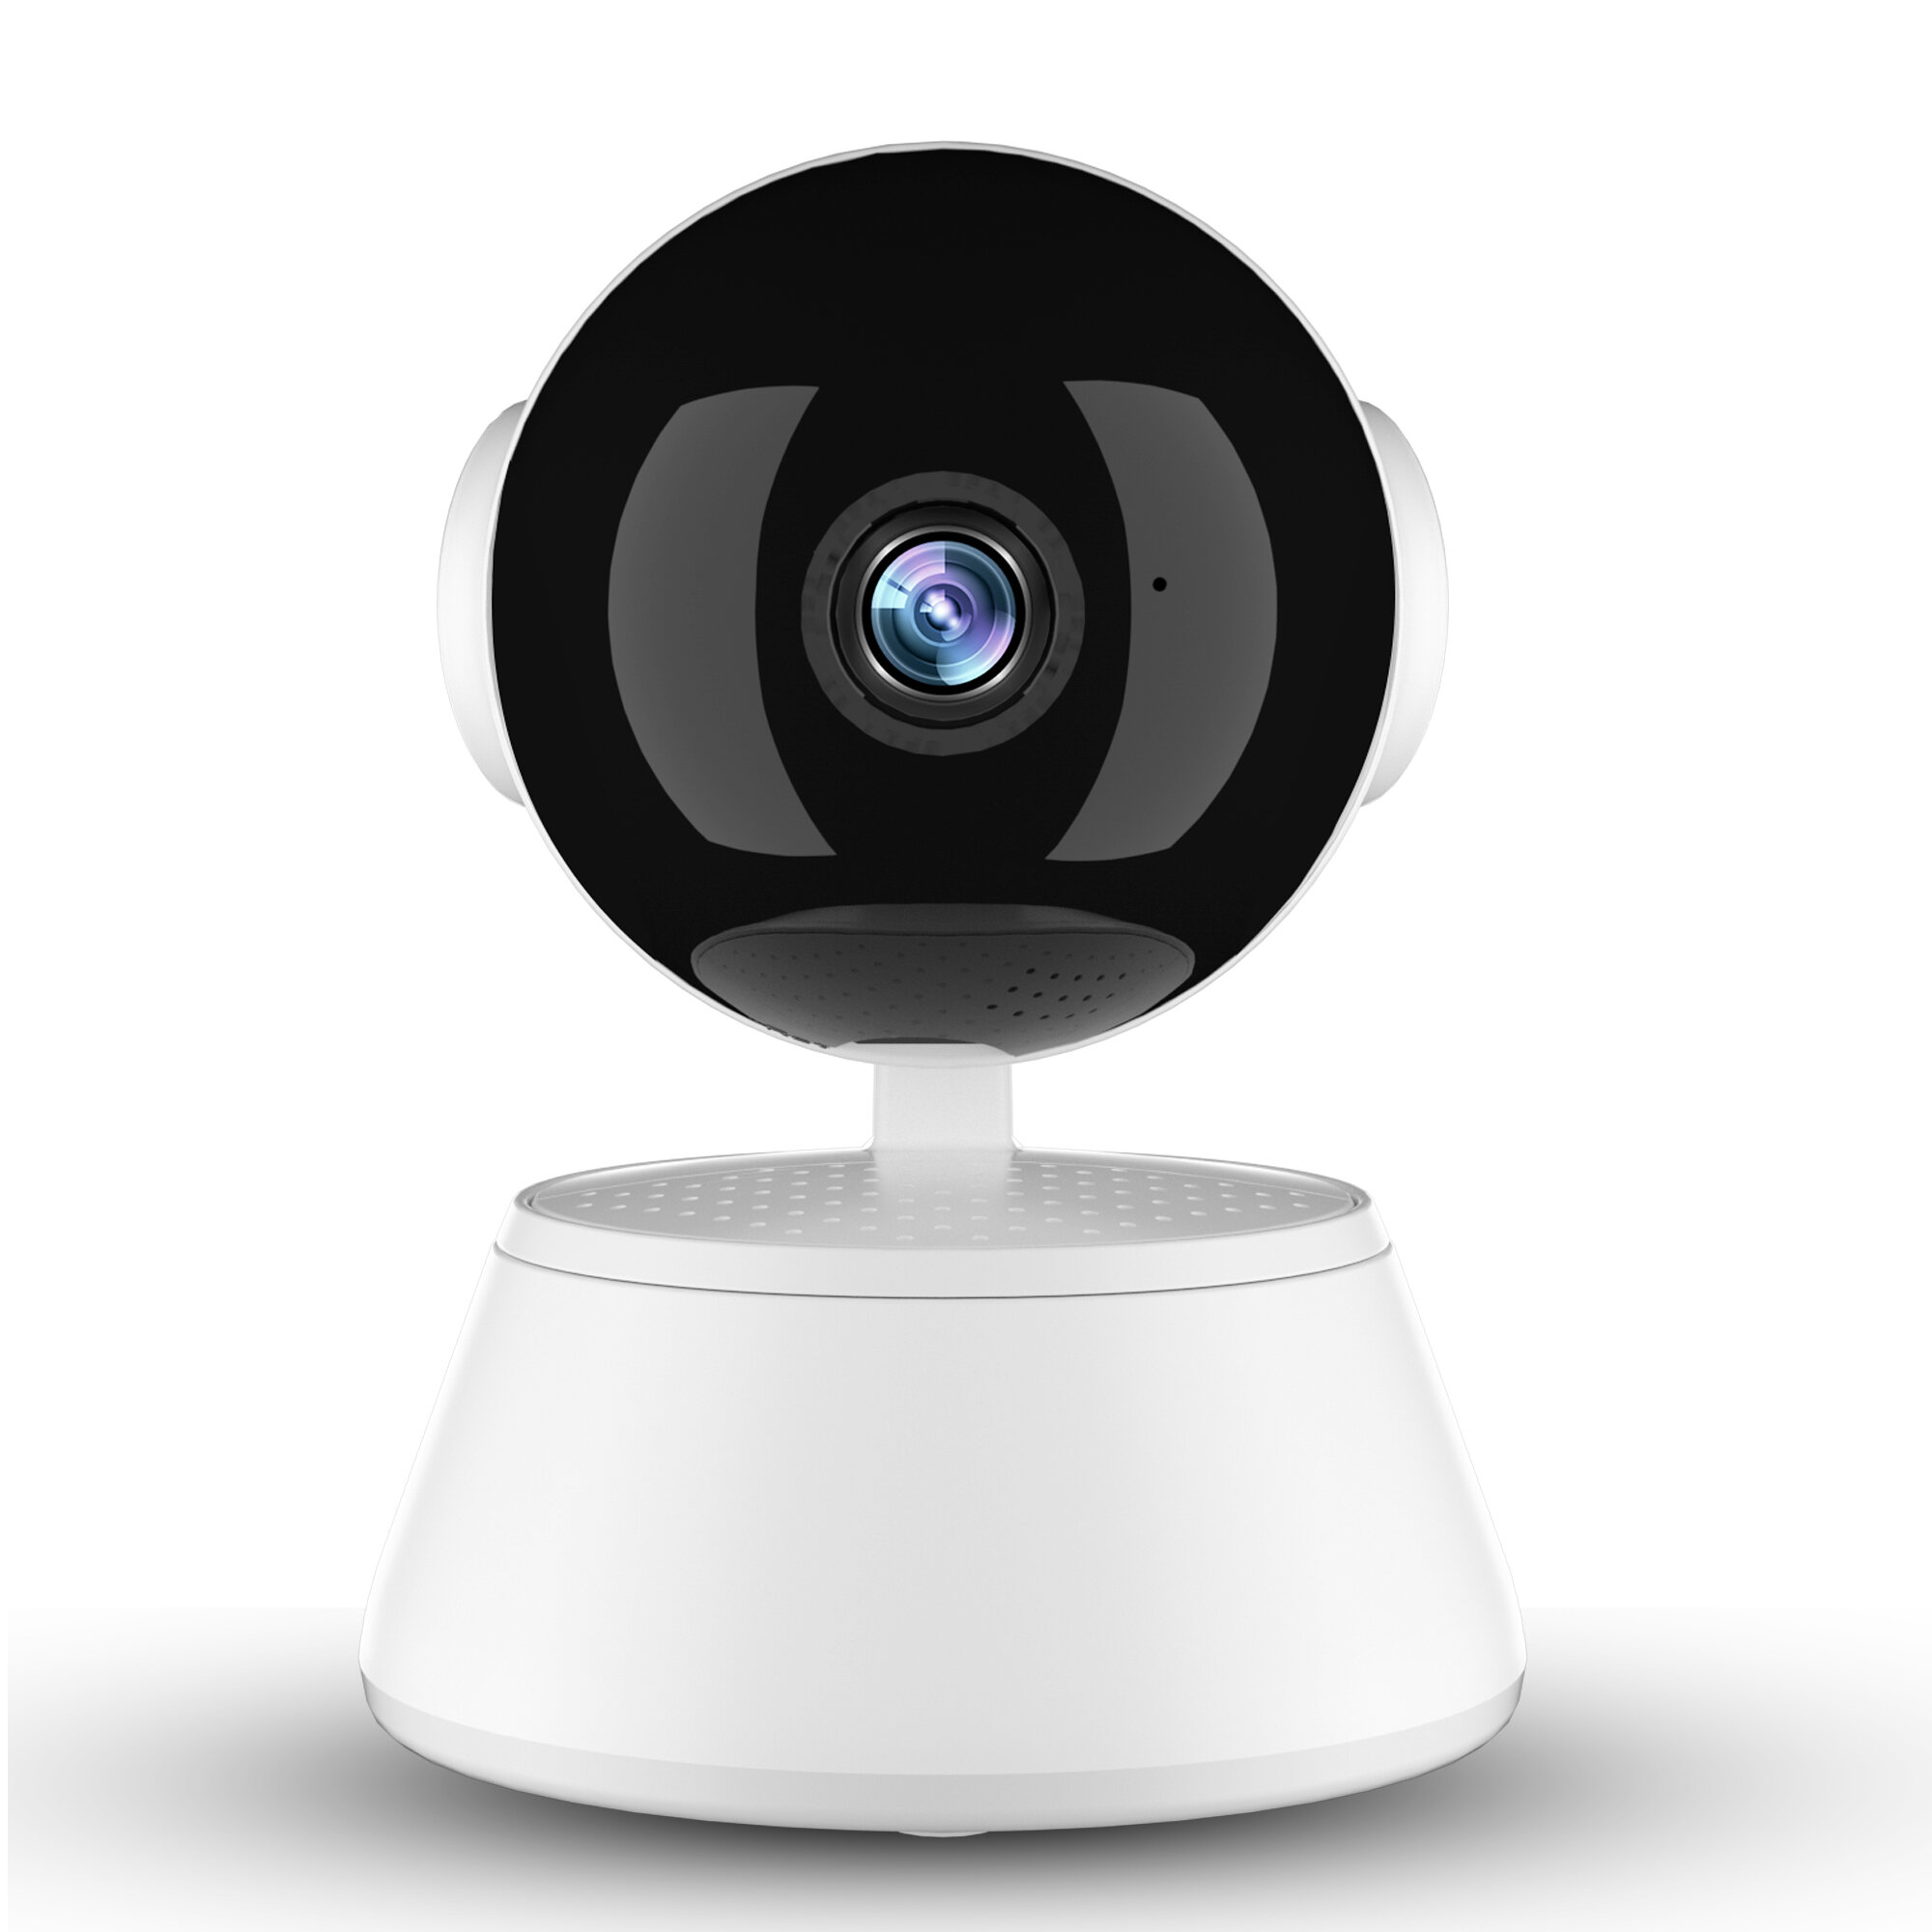 Xiaovv Q6 Pro 1080P WIFI Smart IP Camera 355° Panaromic V380 Pro AP Hotpot Connection Two Way Audio Night Vision Indoor Wireless Security Home Camera